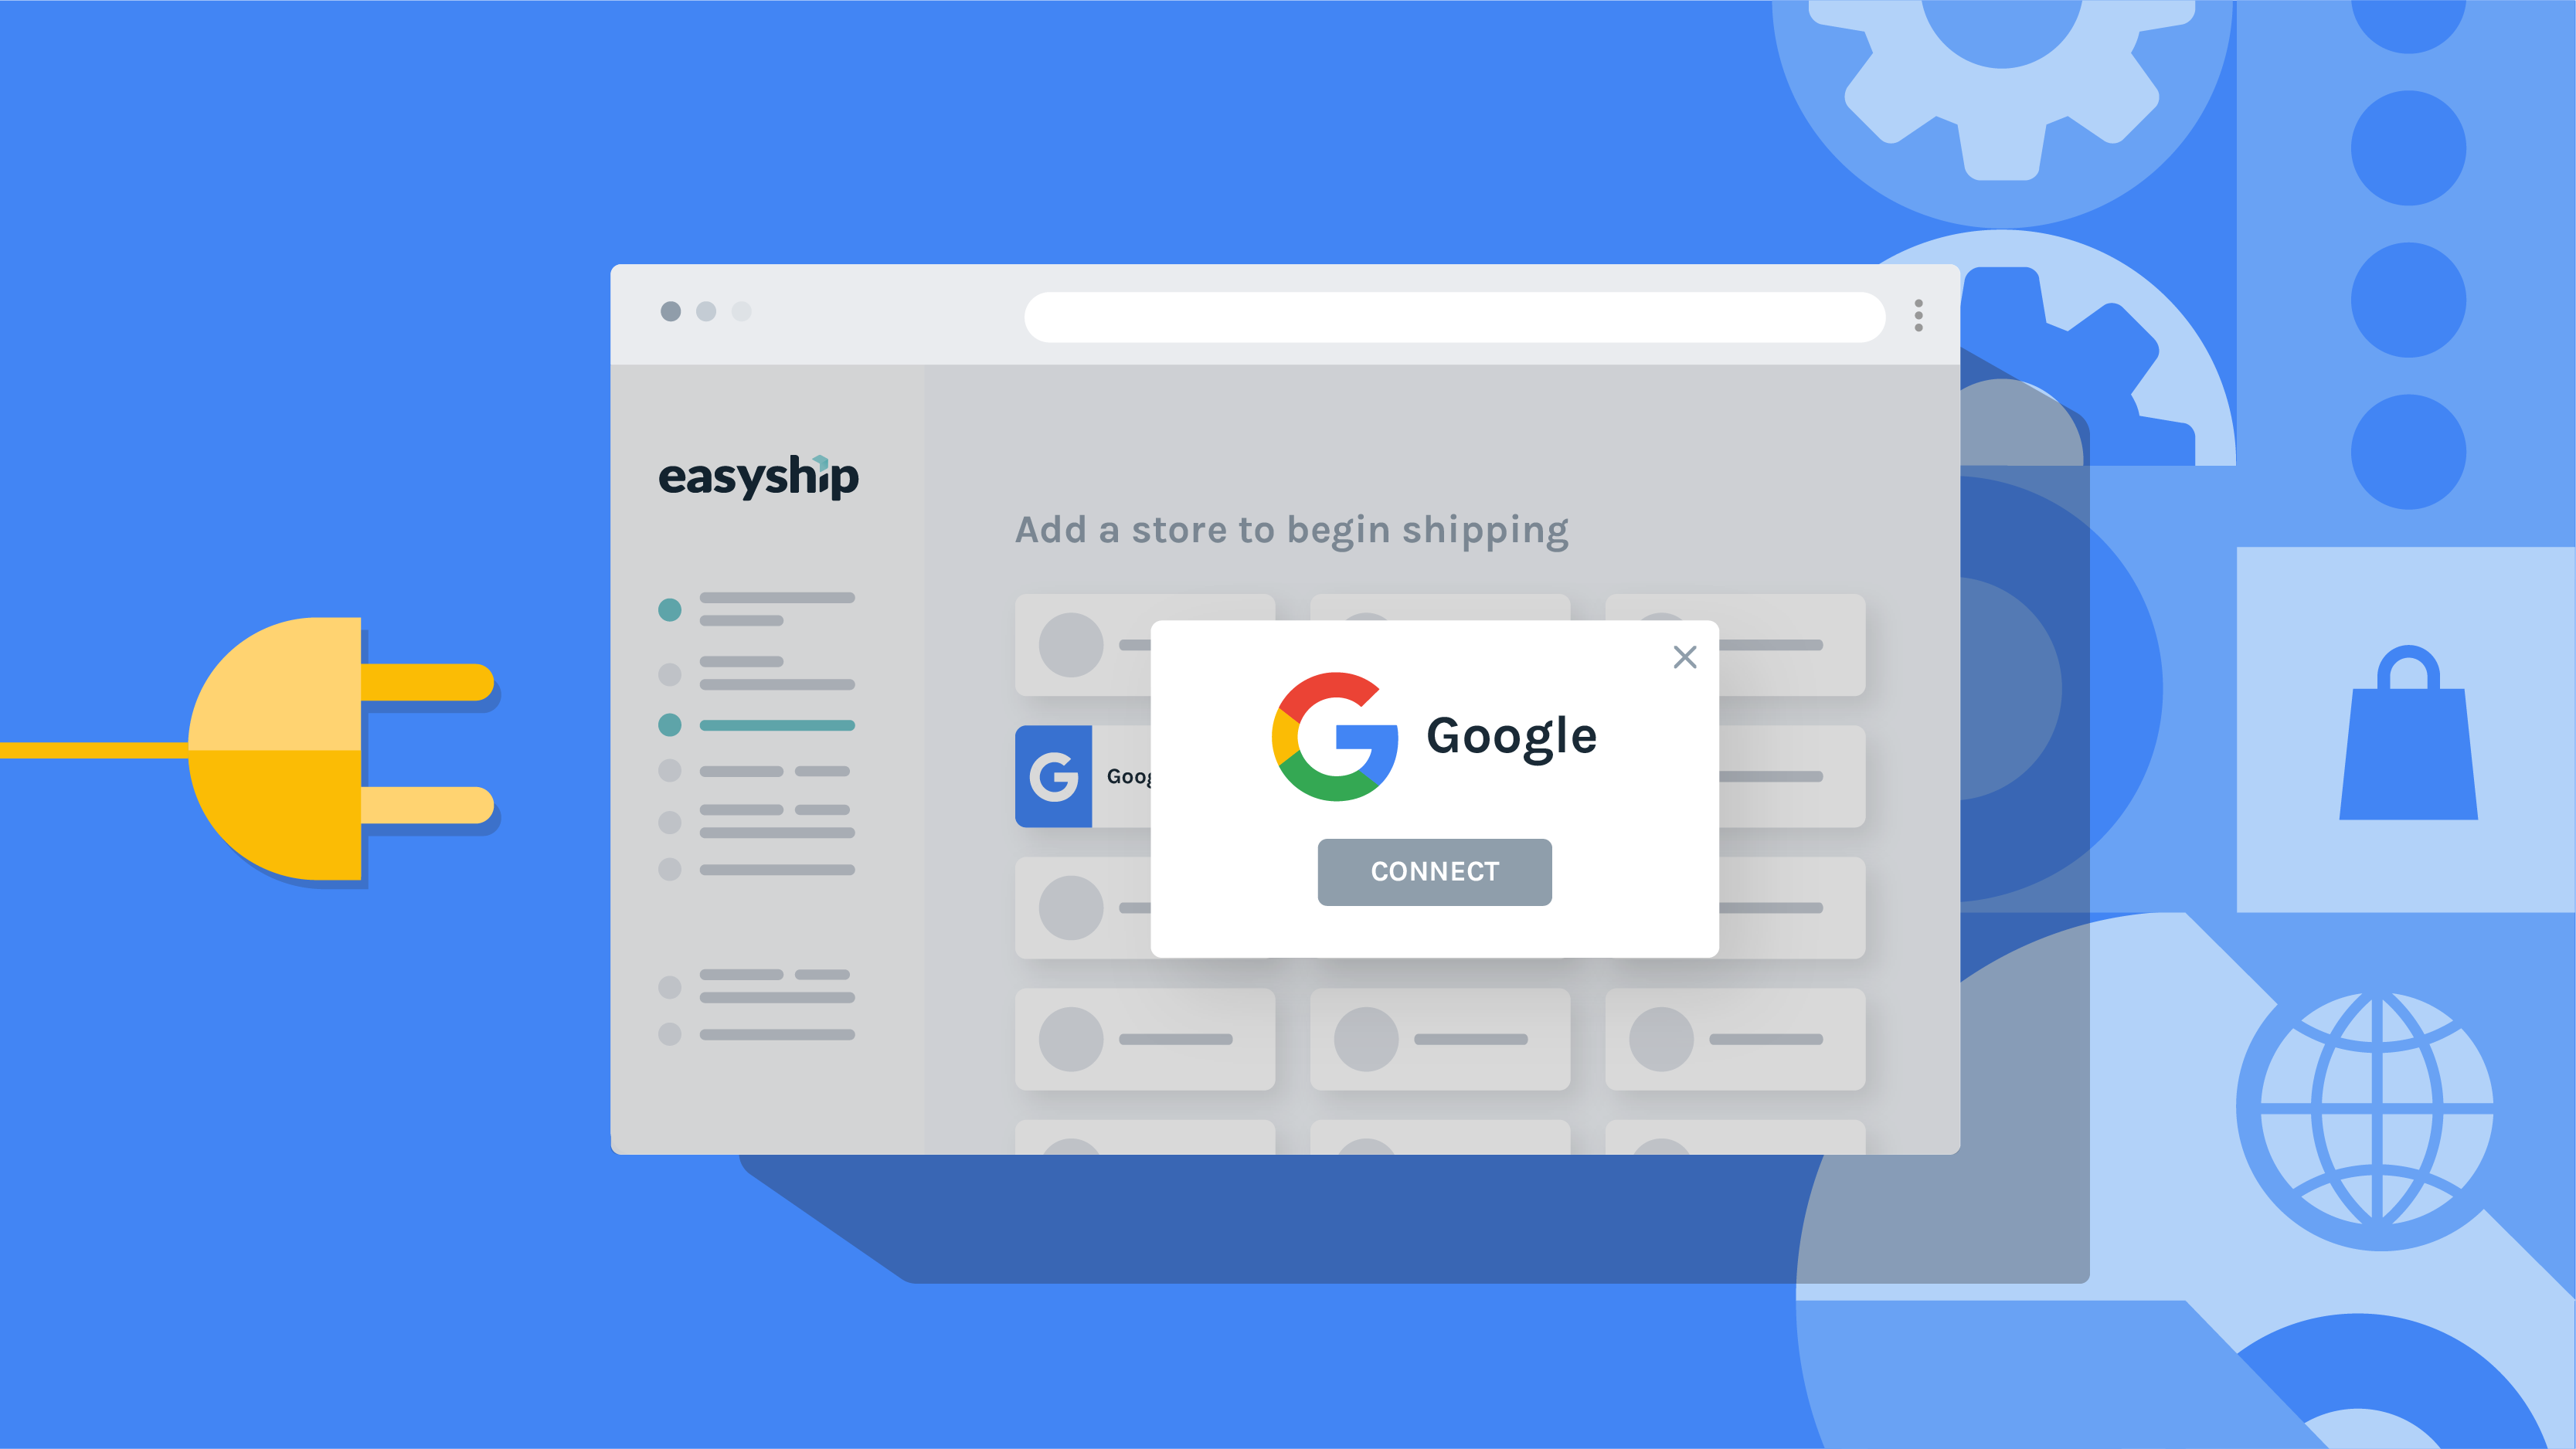 Easyship Now Integrates with Google for Seamless Fulfillment